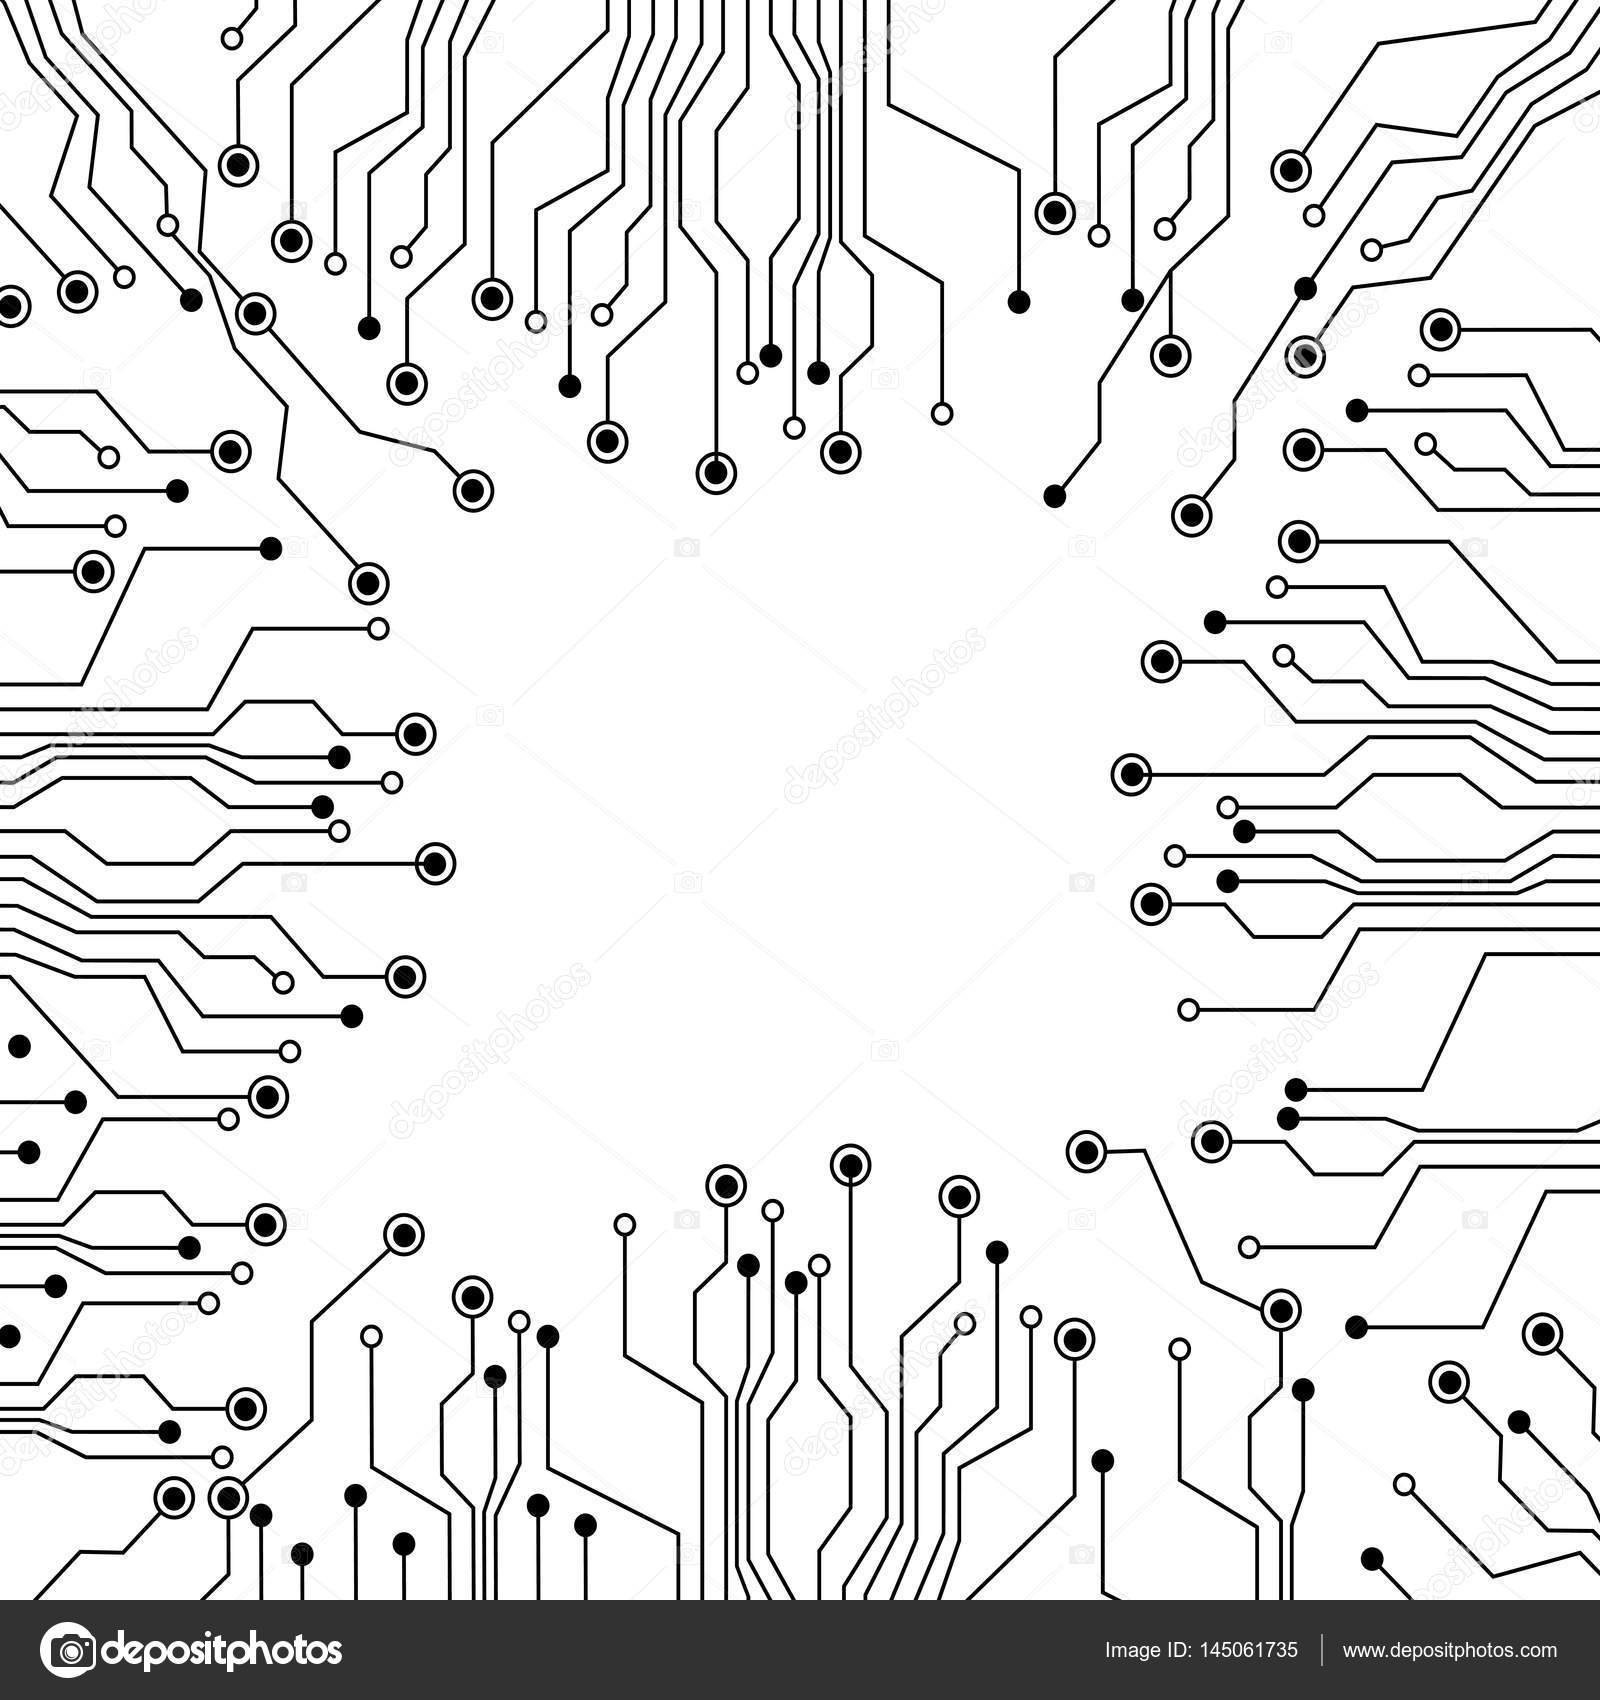 Figure Electrical Circuits Icon Stock Vector Grgroupstock 145061735 Circuit Diagram